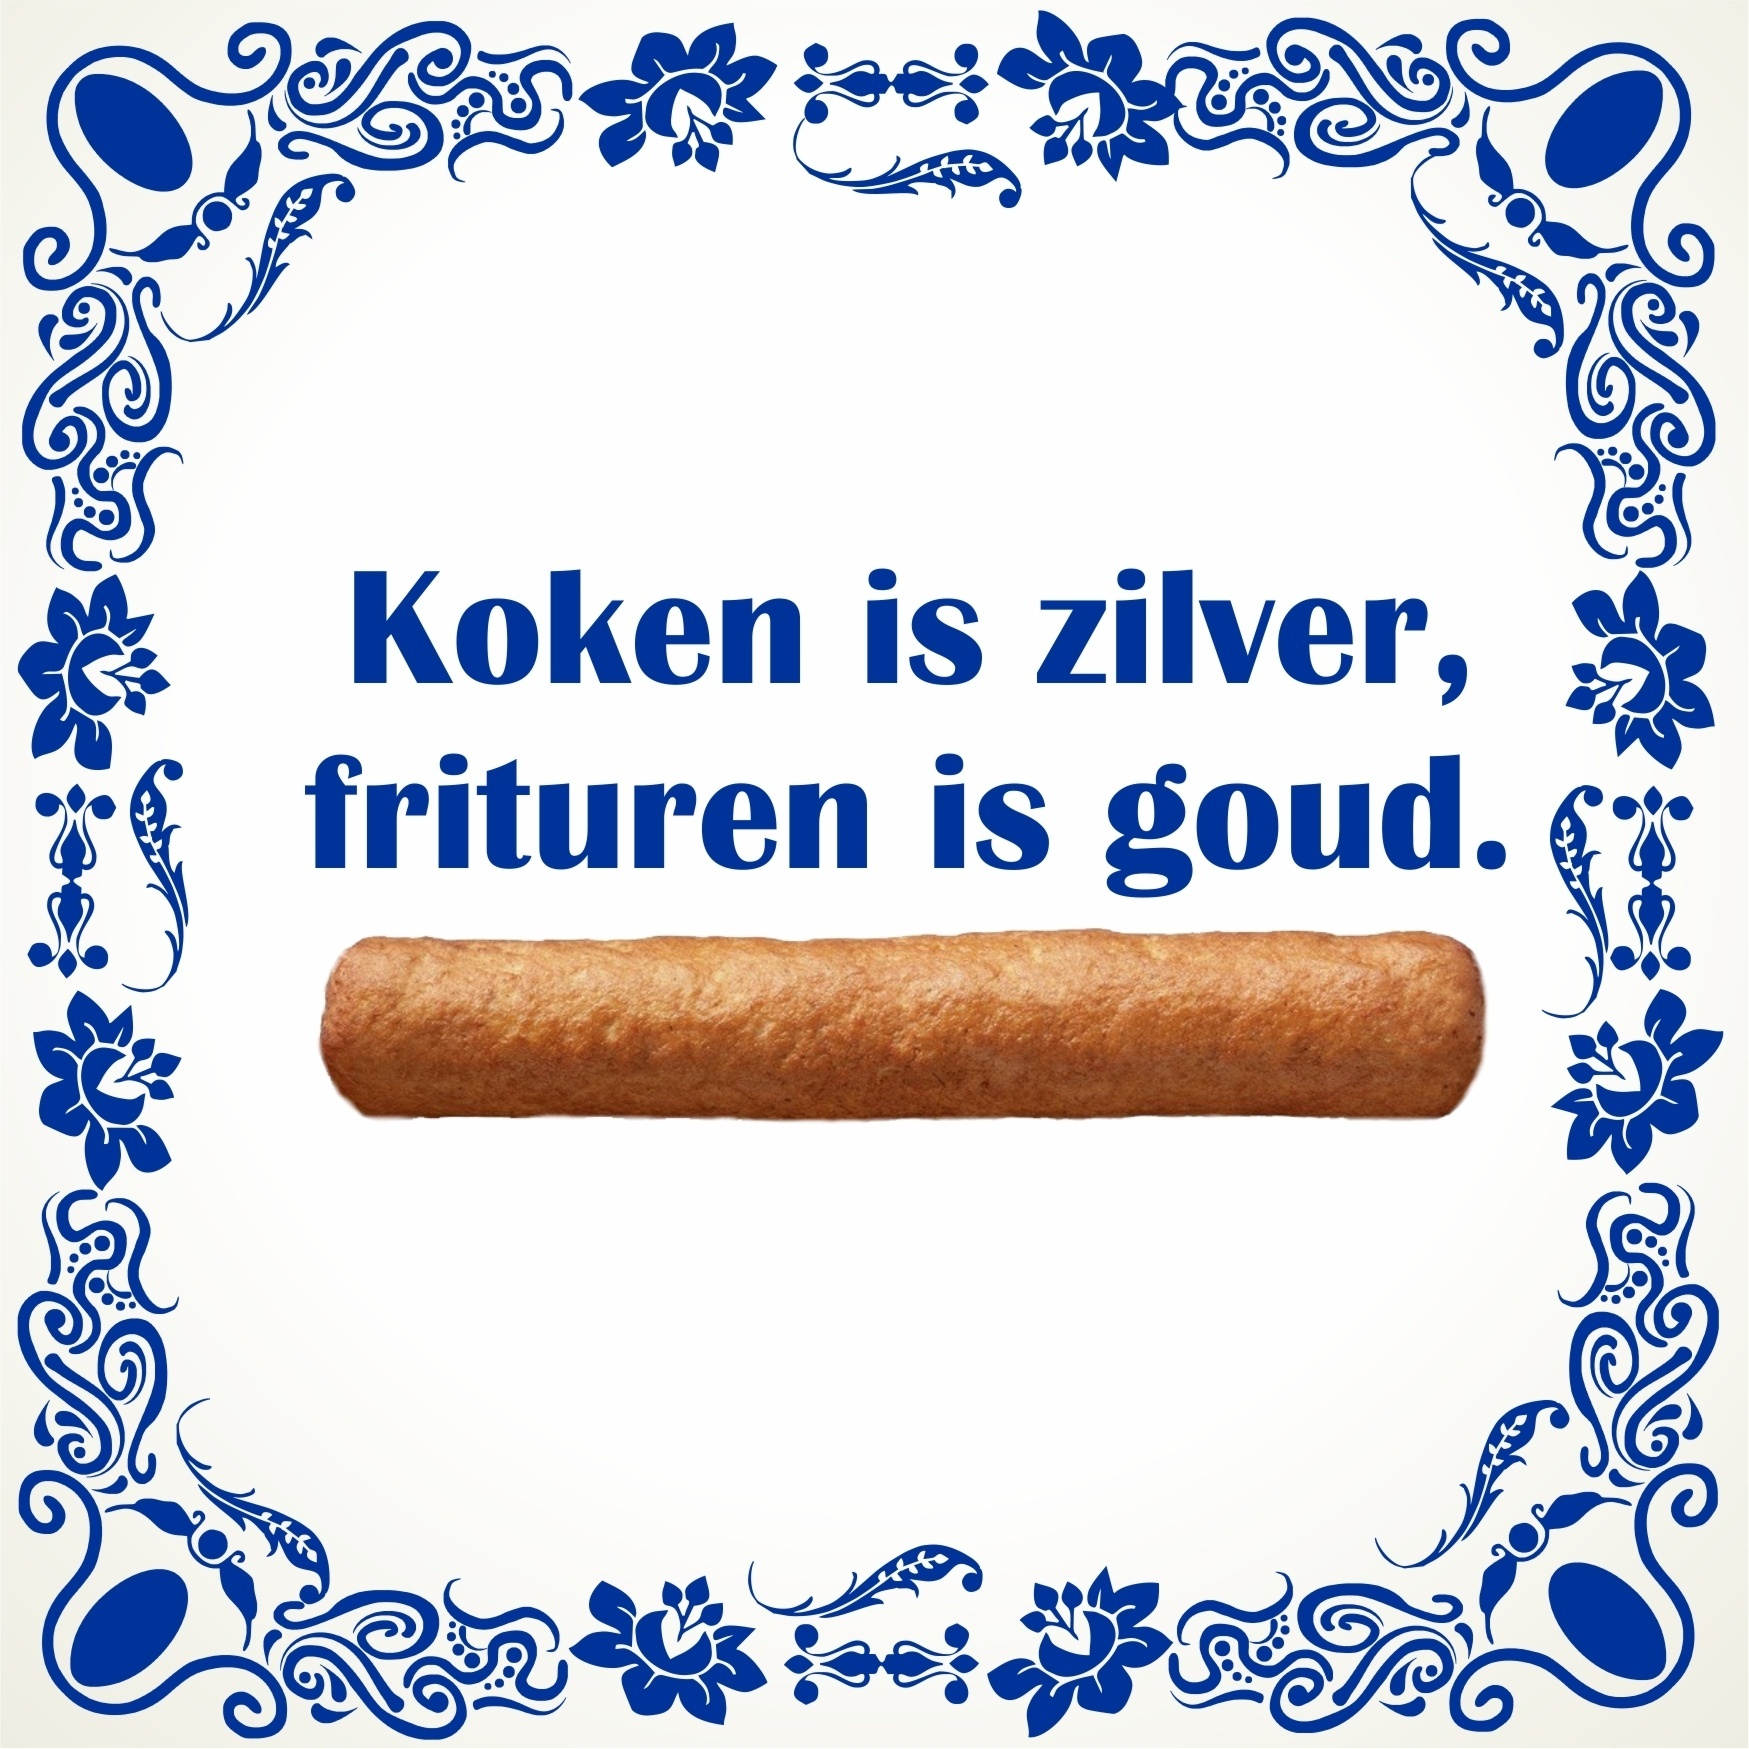 Tegeltje Koken is zilver, frituren is goud. snackbar patatzaak fastfood grappig